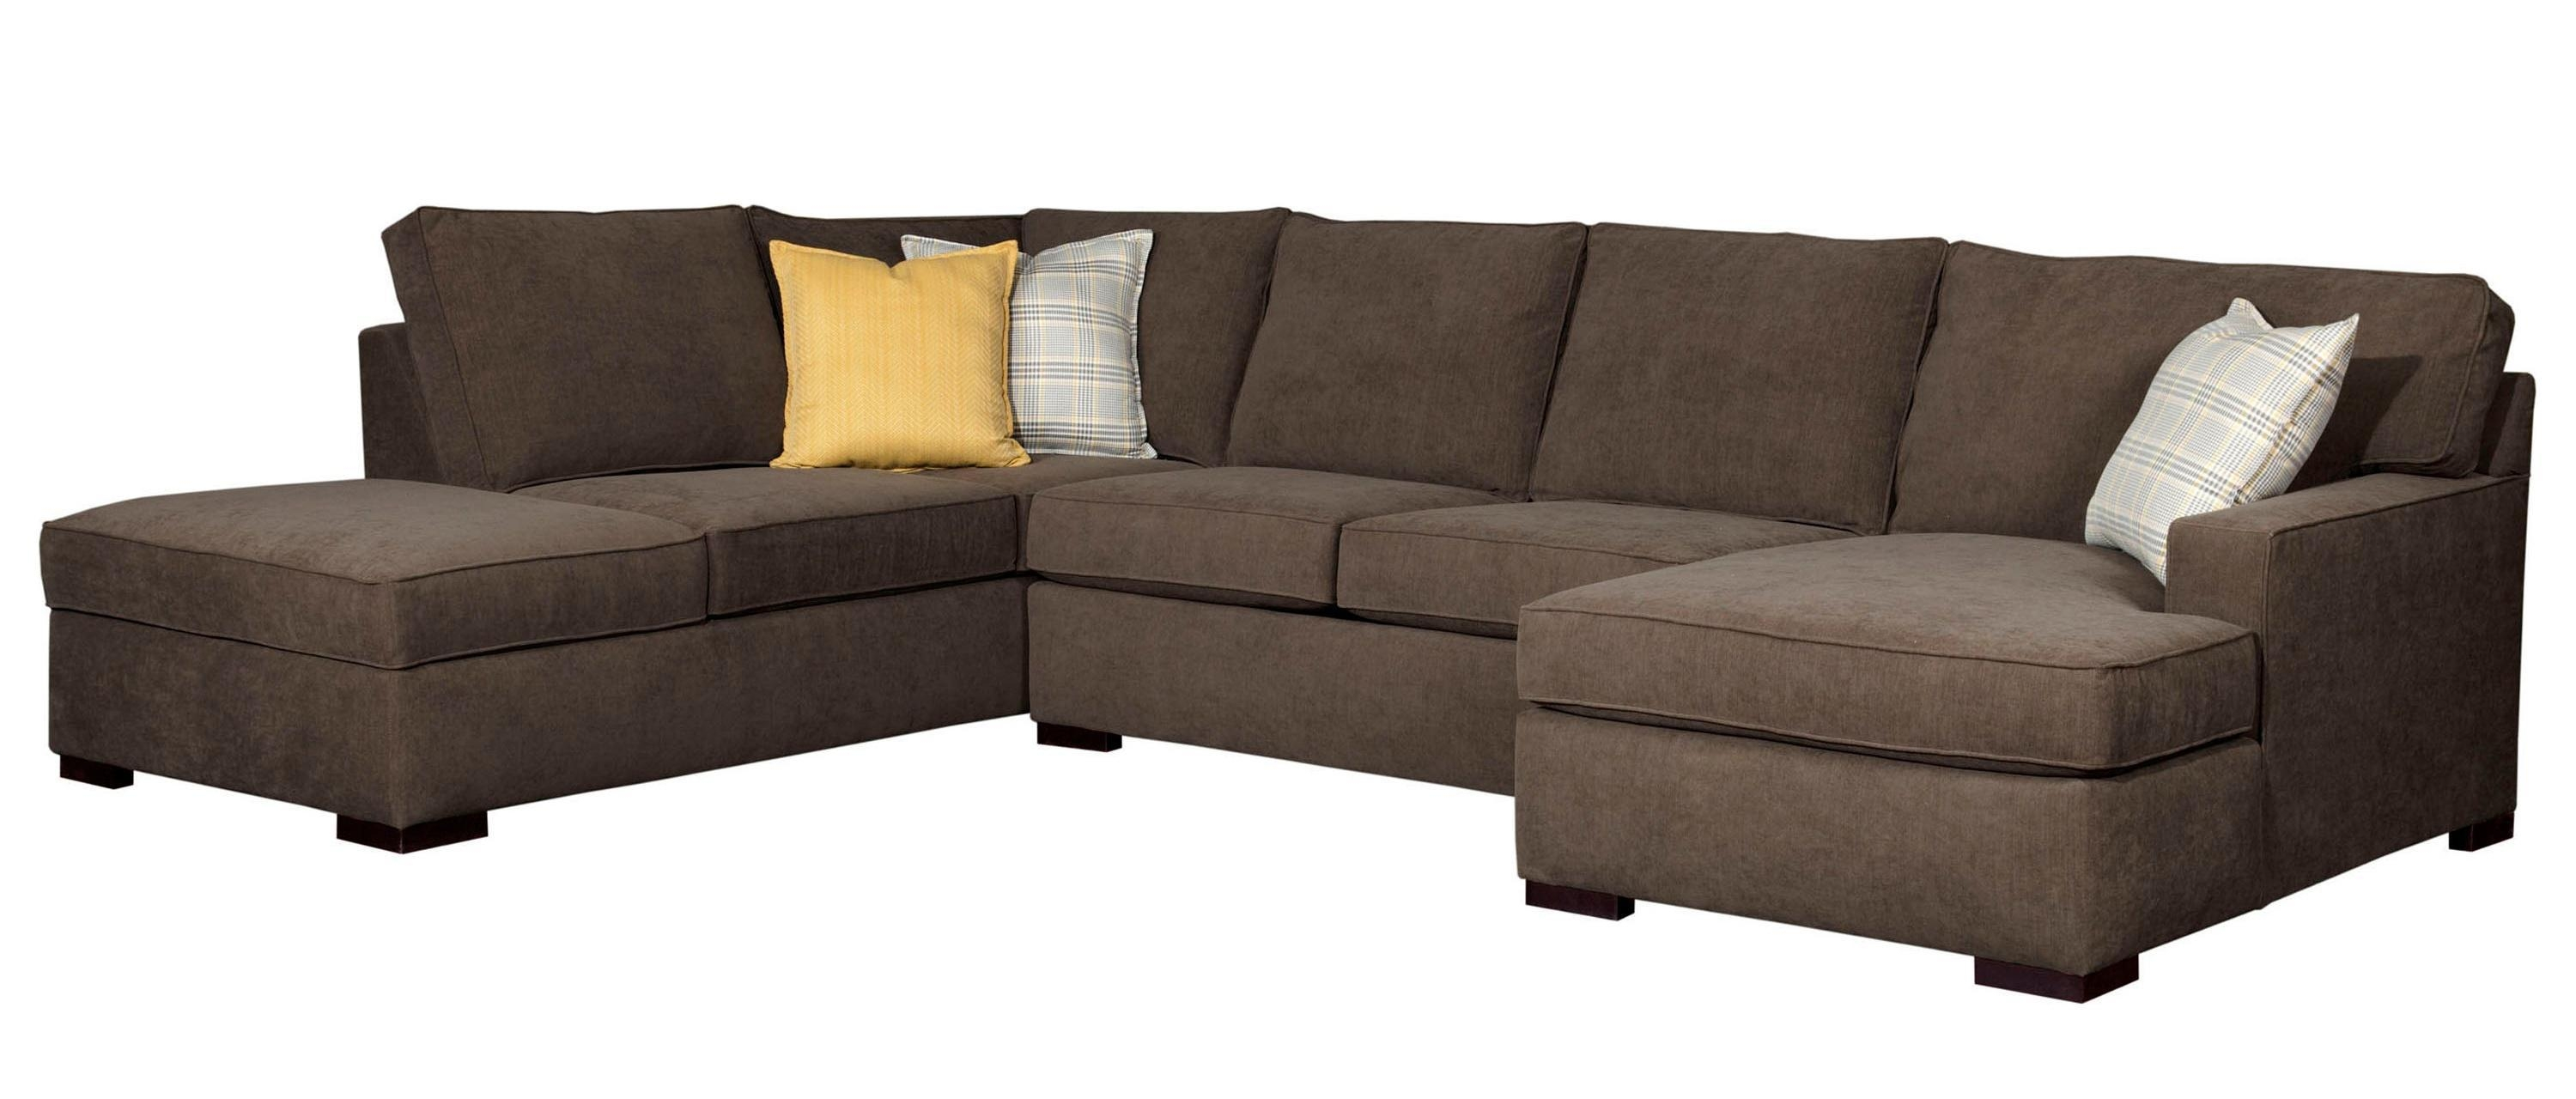 broyhill sleeper sofa covering up scratches on leather 20 inspirations sectional sofas ideas